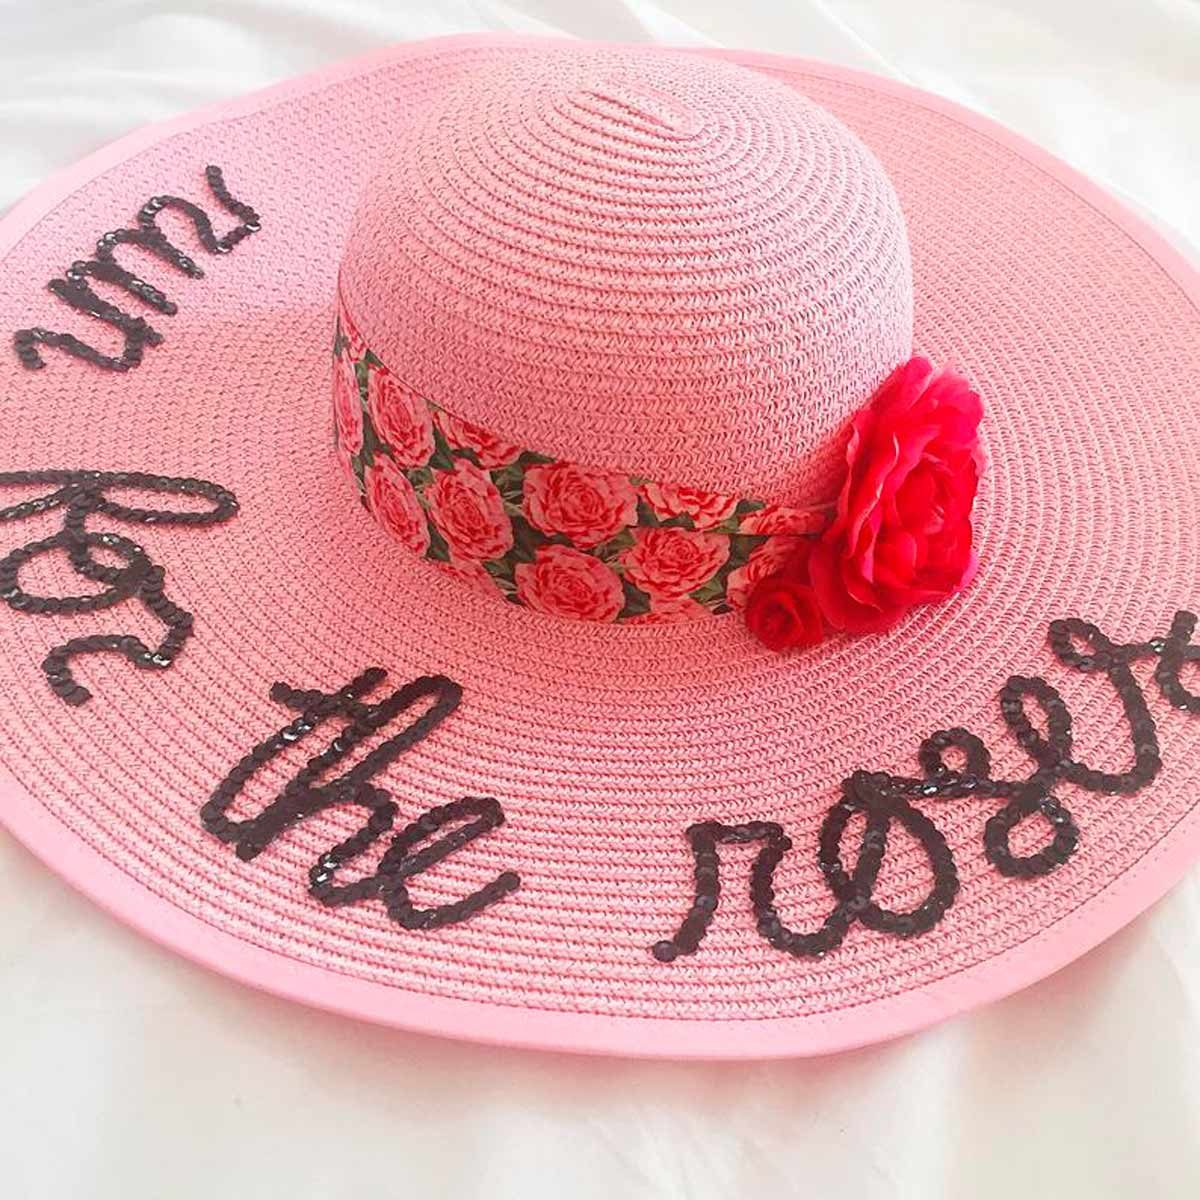 How To Host An Epic Kentucky Derby Party Family Handyman